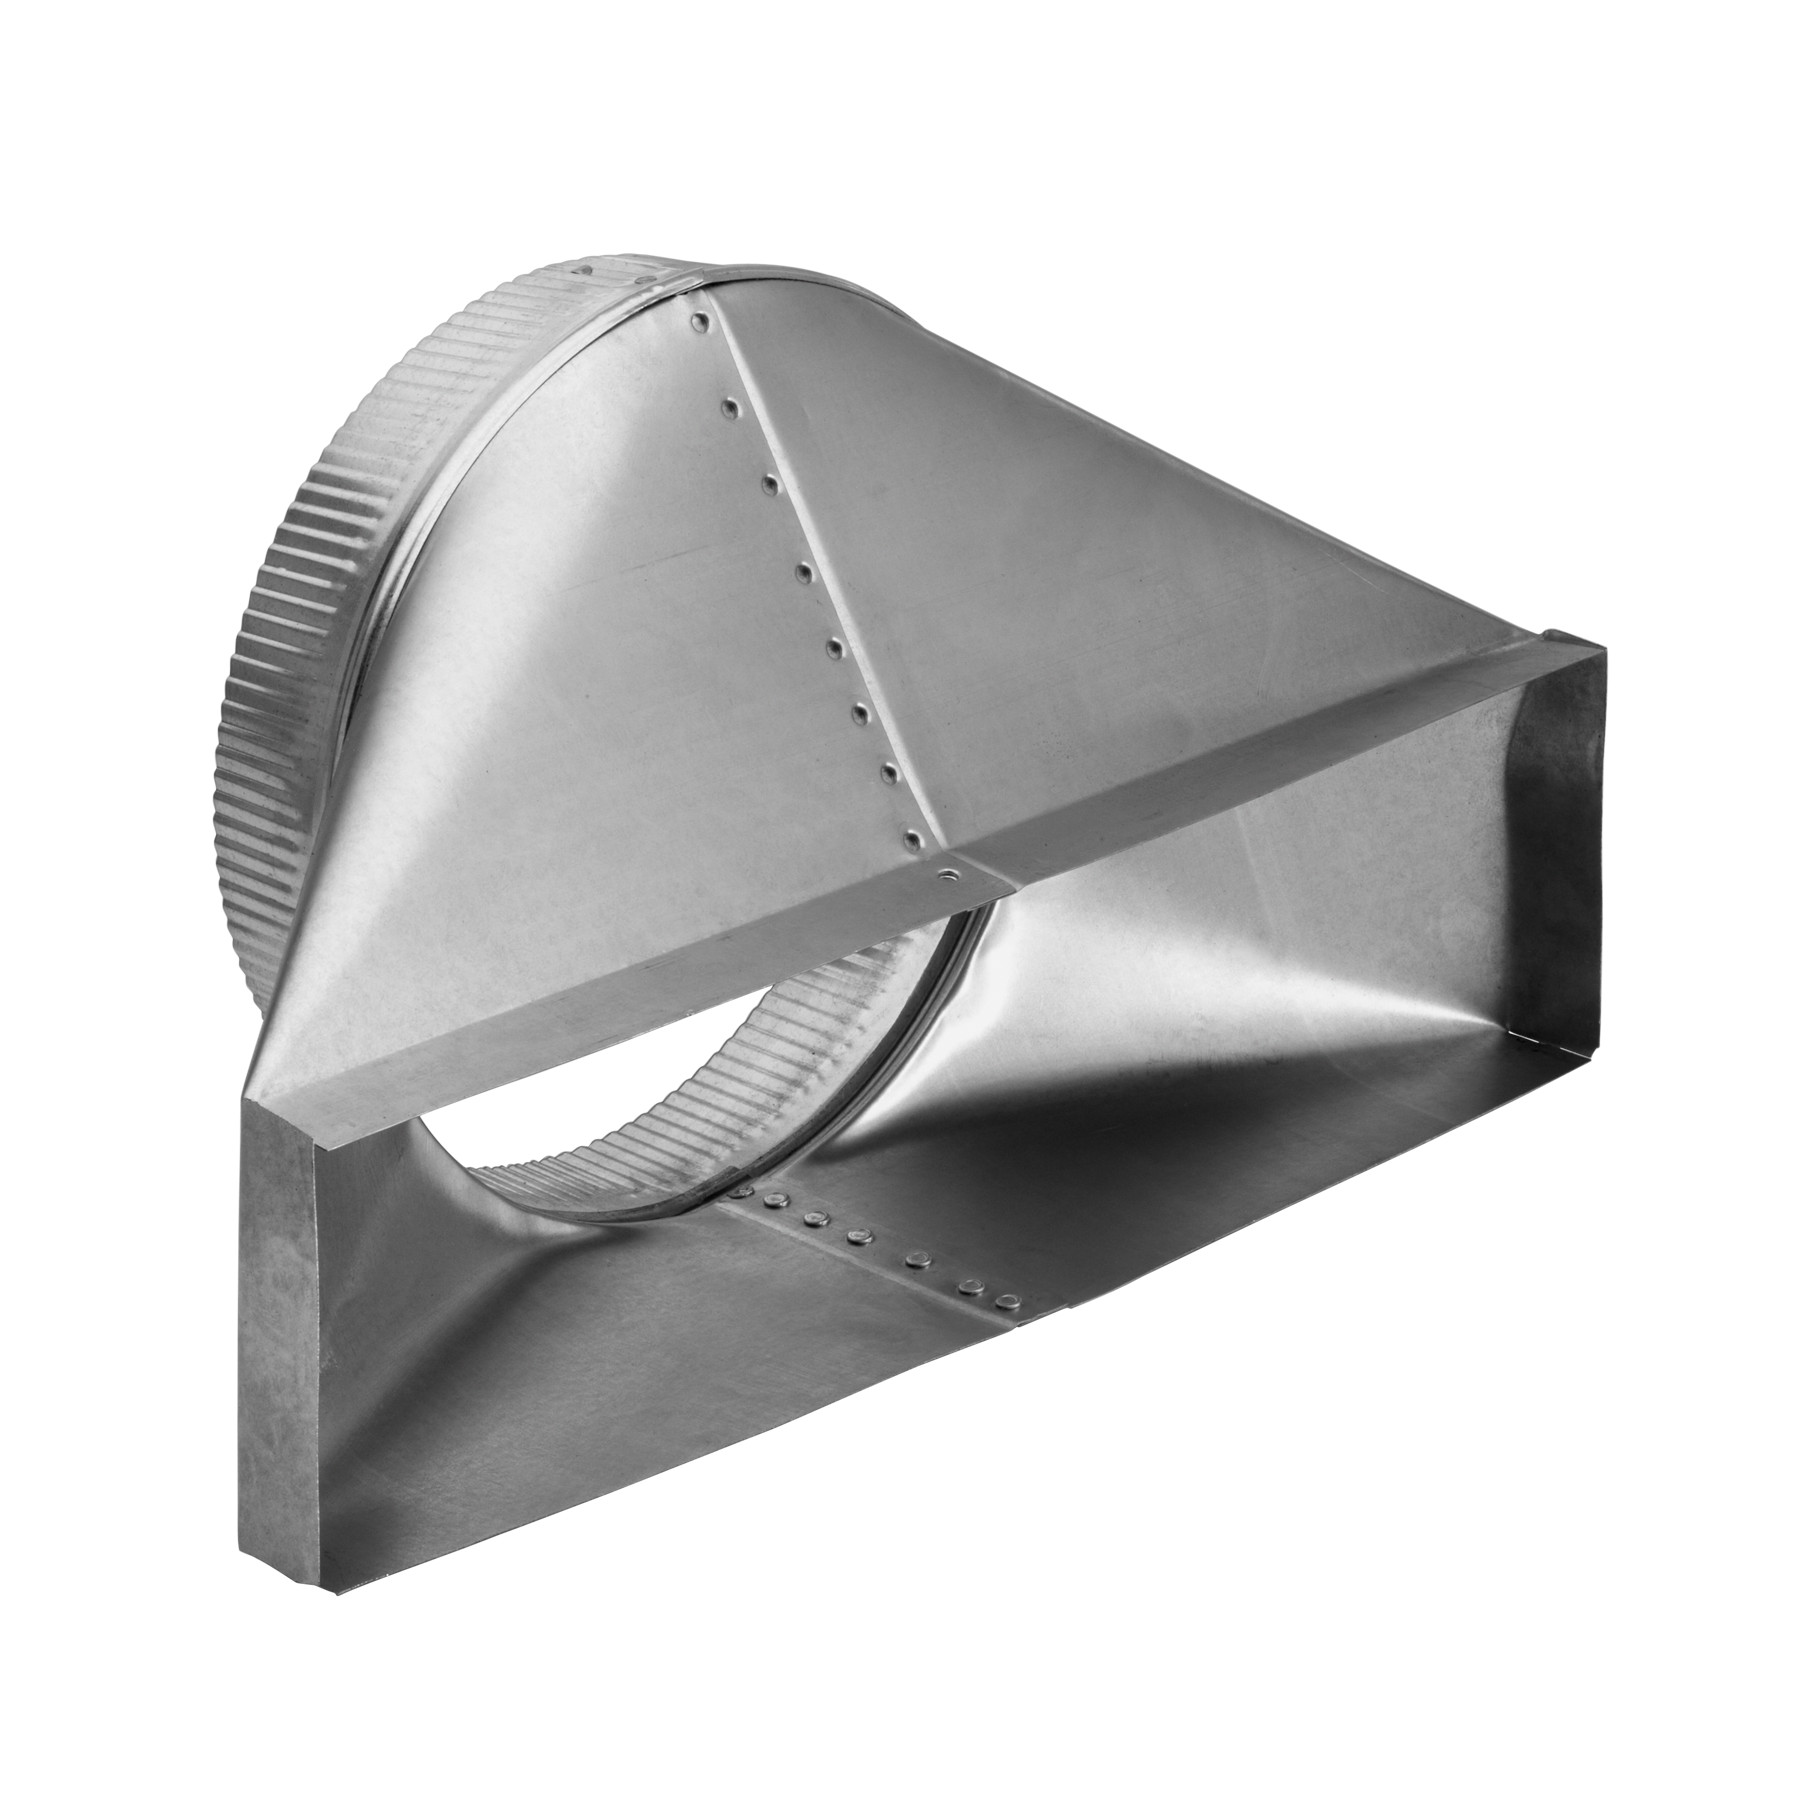 10-Inch Round Horizontal Transition for Range Hoods and Bath Ventilation Fans